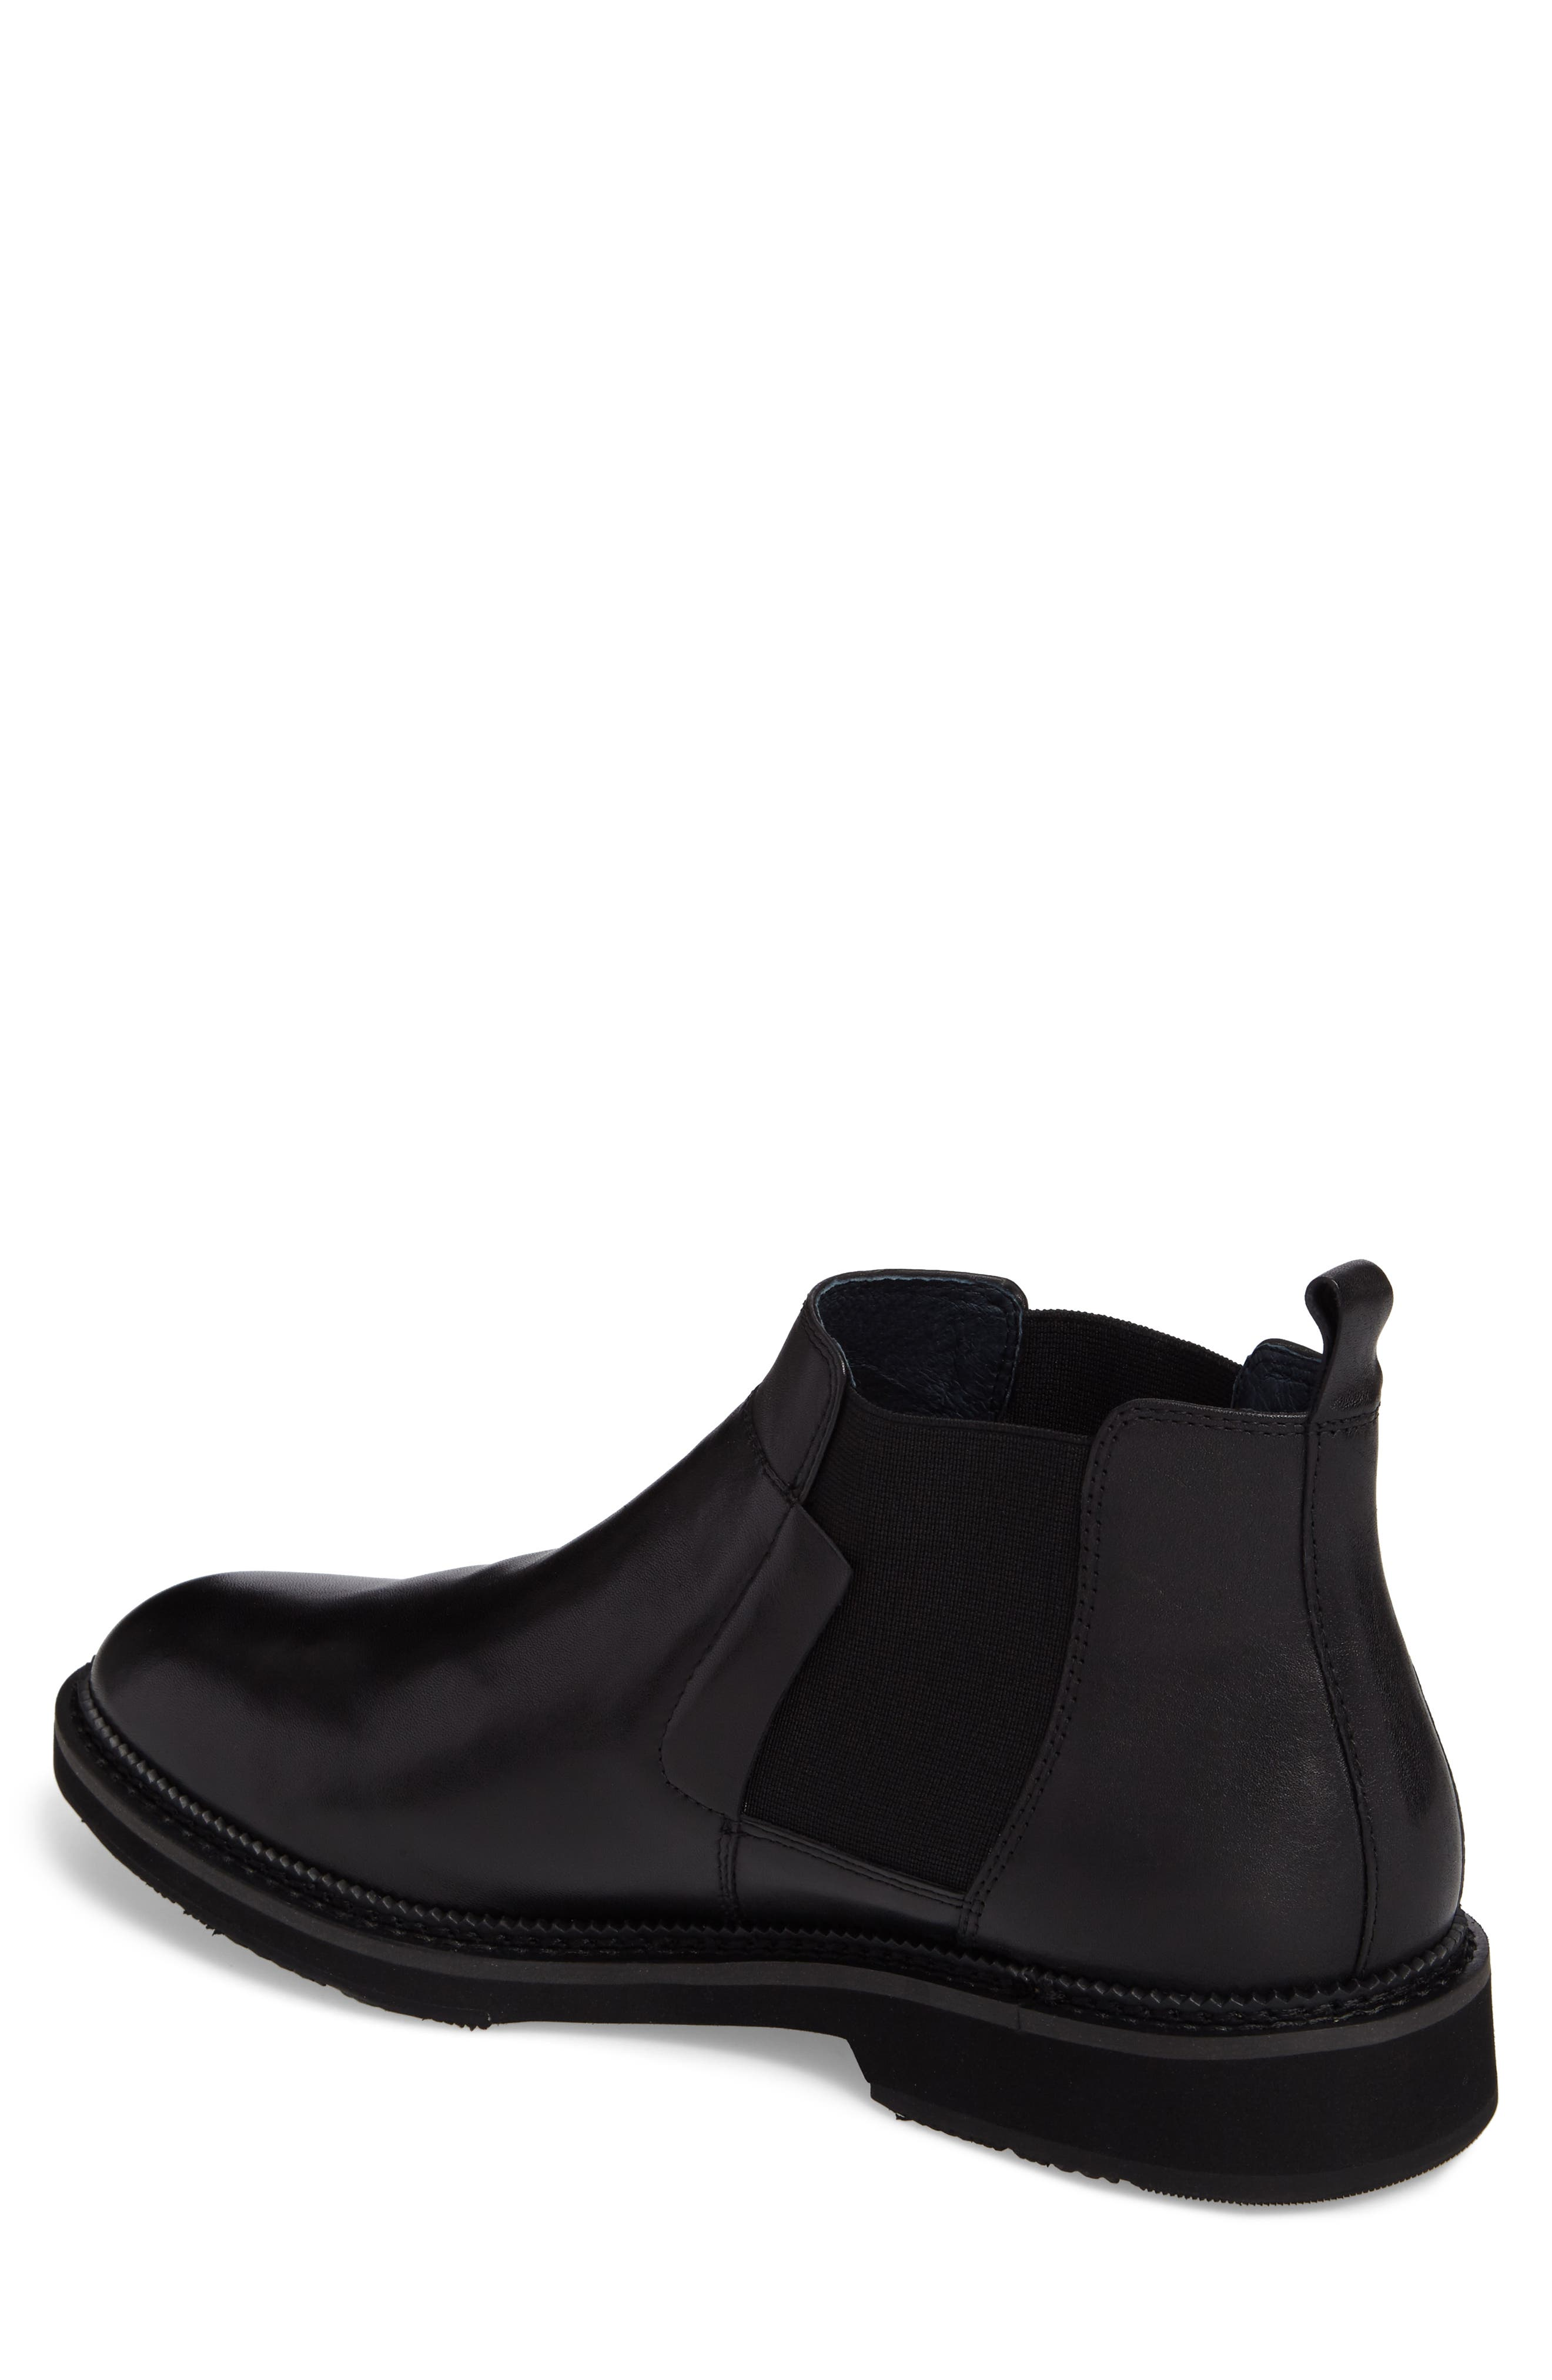 ZANZARA,                             Garrad Chelsea Boot,                             Alternate thumbnail 2, color,                             001